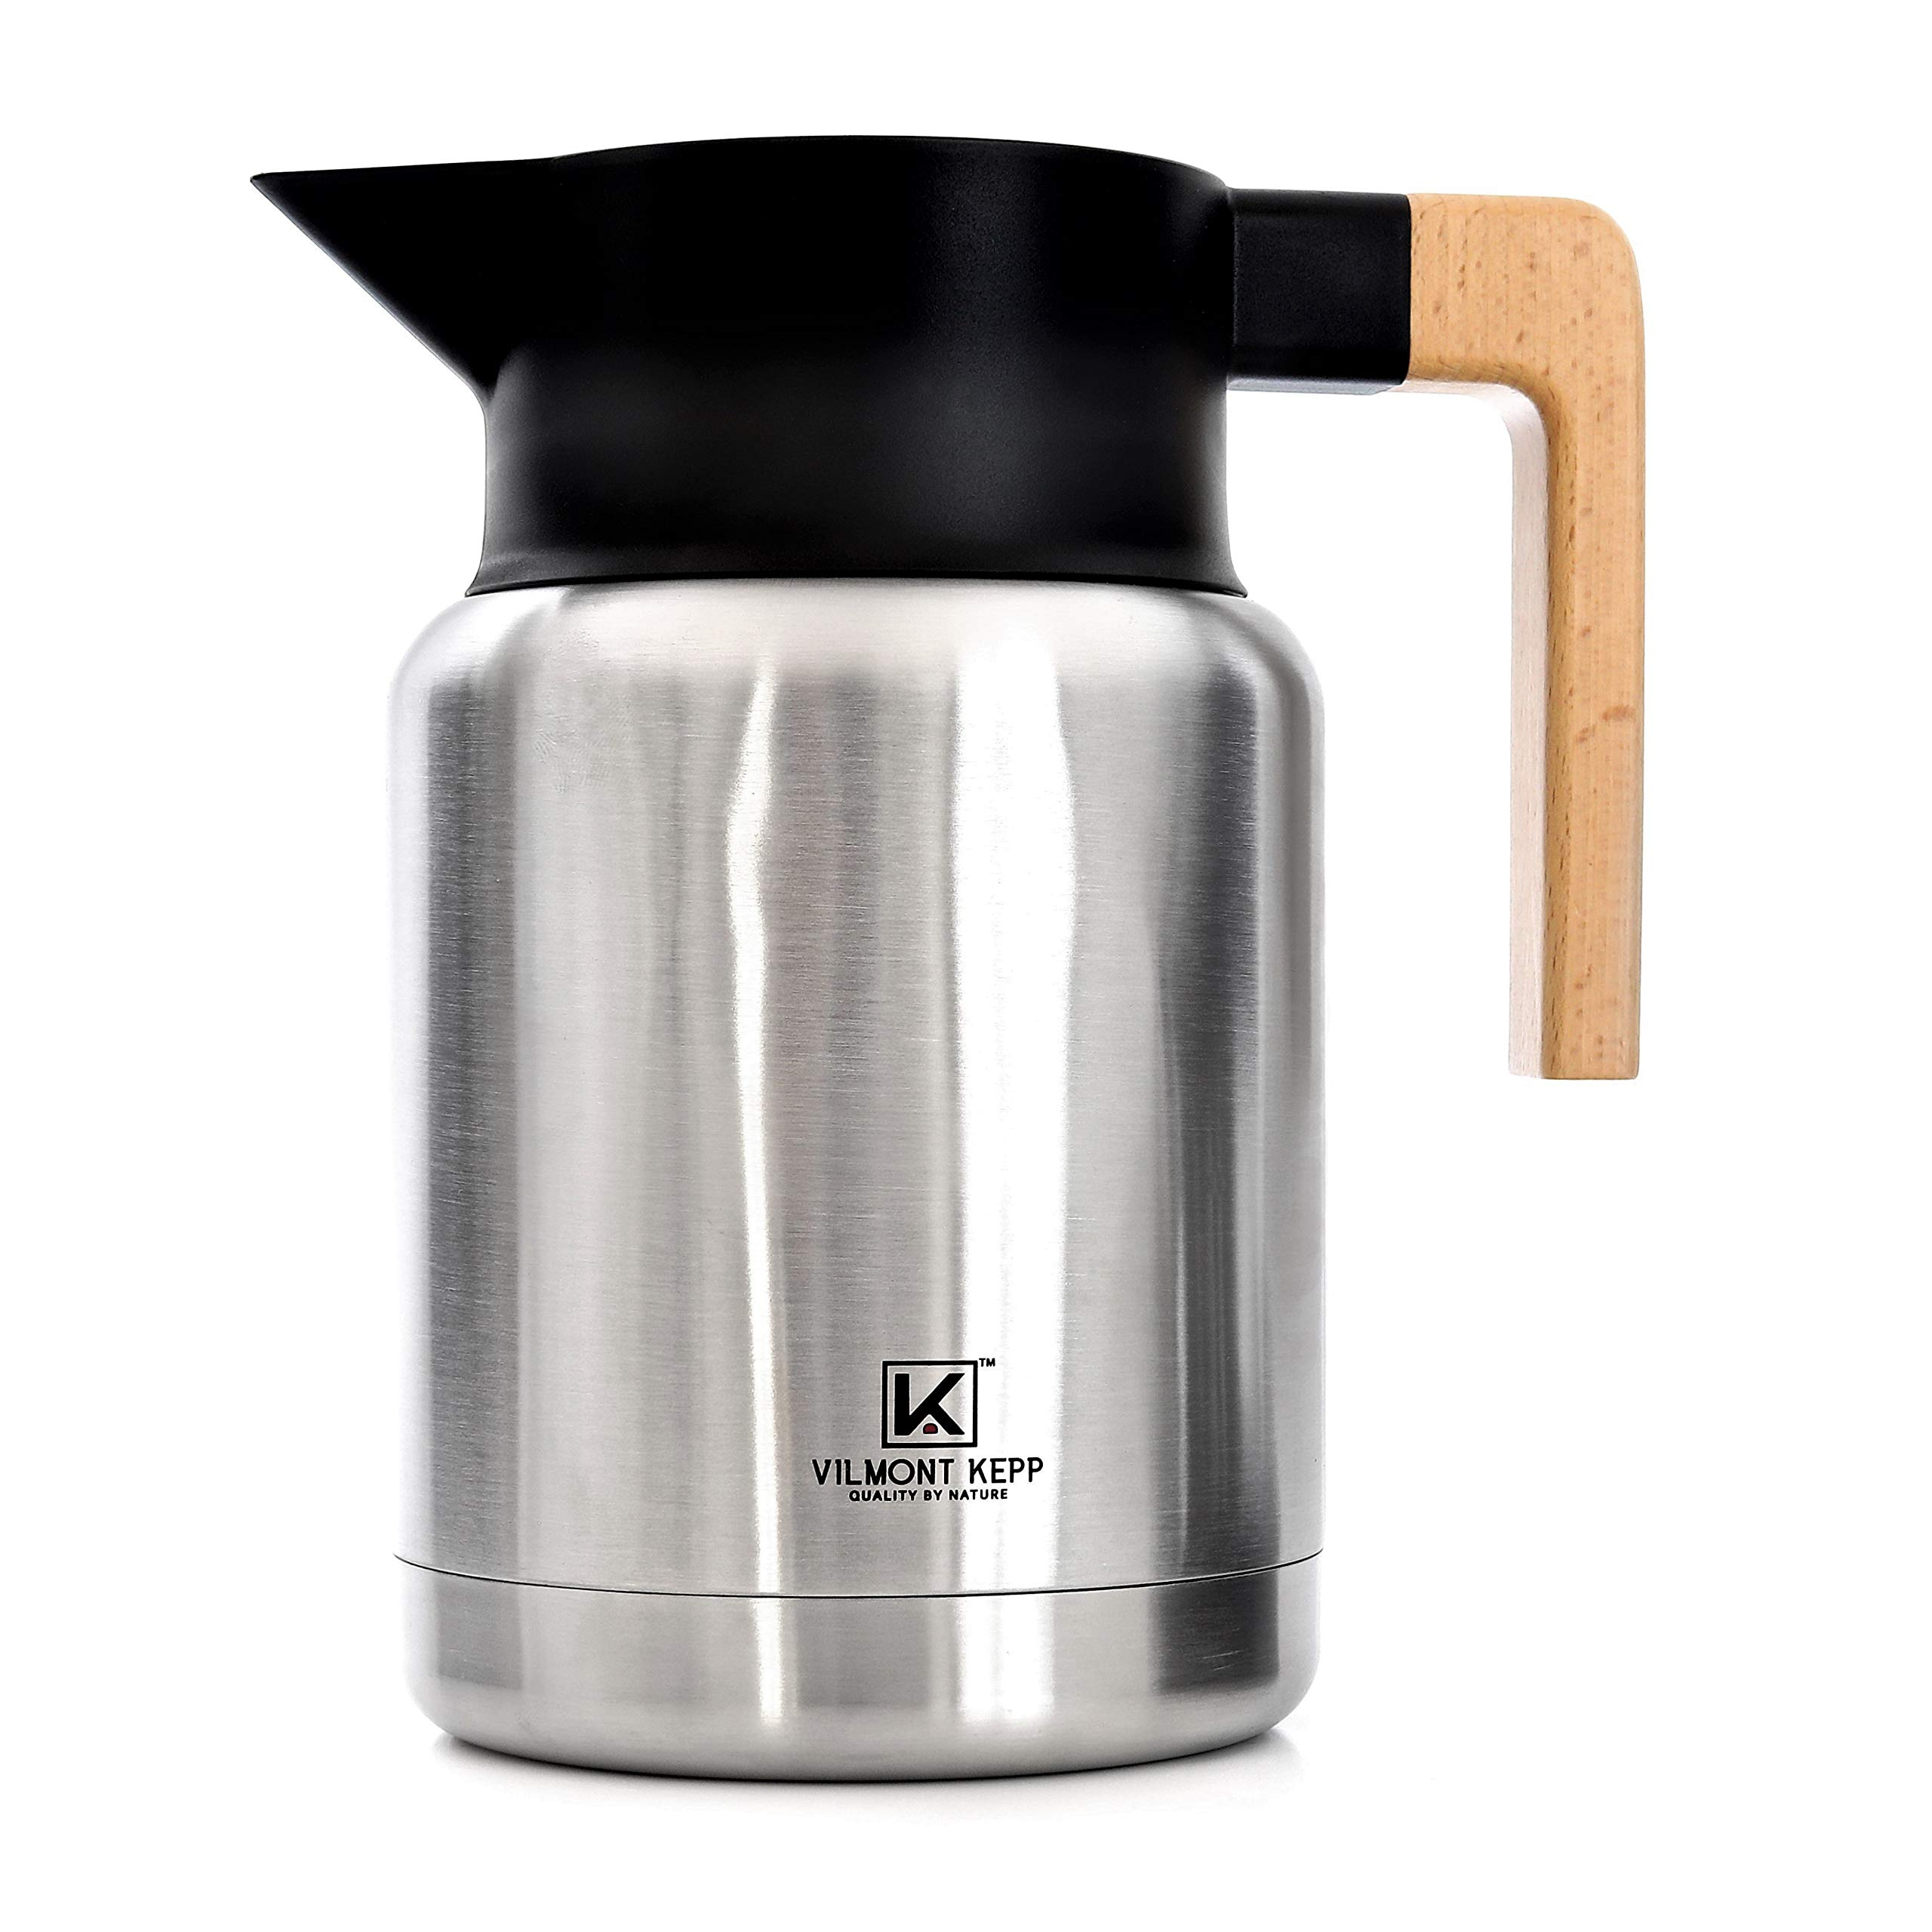 Premium Large (50oz) Thermal Carafe for Coffee Tea or Cold Drinks, Sturdy Thermos Double Walled Stainless Steel Insulated Tea Pot, Home or Office, Gift Boxed, Beechwood Handle No-Drips Wide Mouth